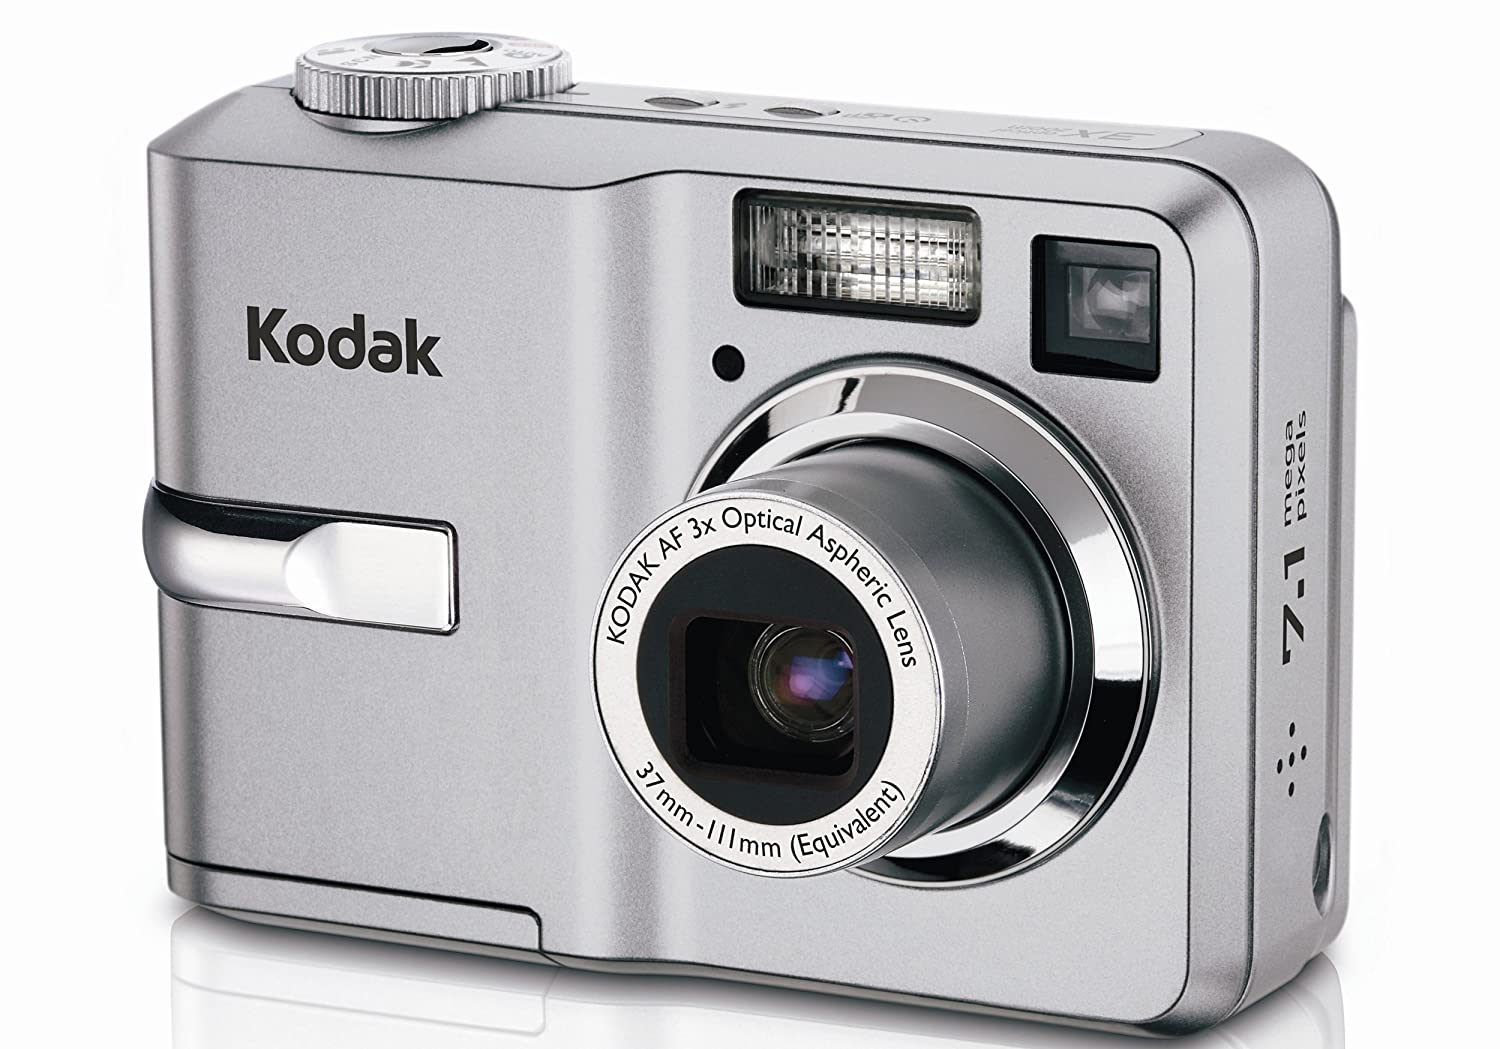 Amazon.com : Kodak Easyshare C743 7.1 MP Digital Camera with 3xOptical Zoom  : Point And Shoot Digital Cameras : Camera & Photo